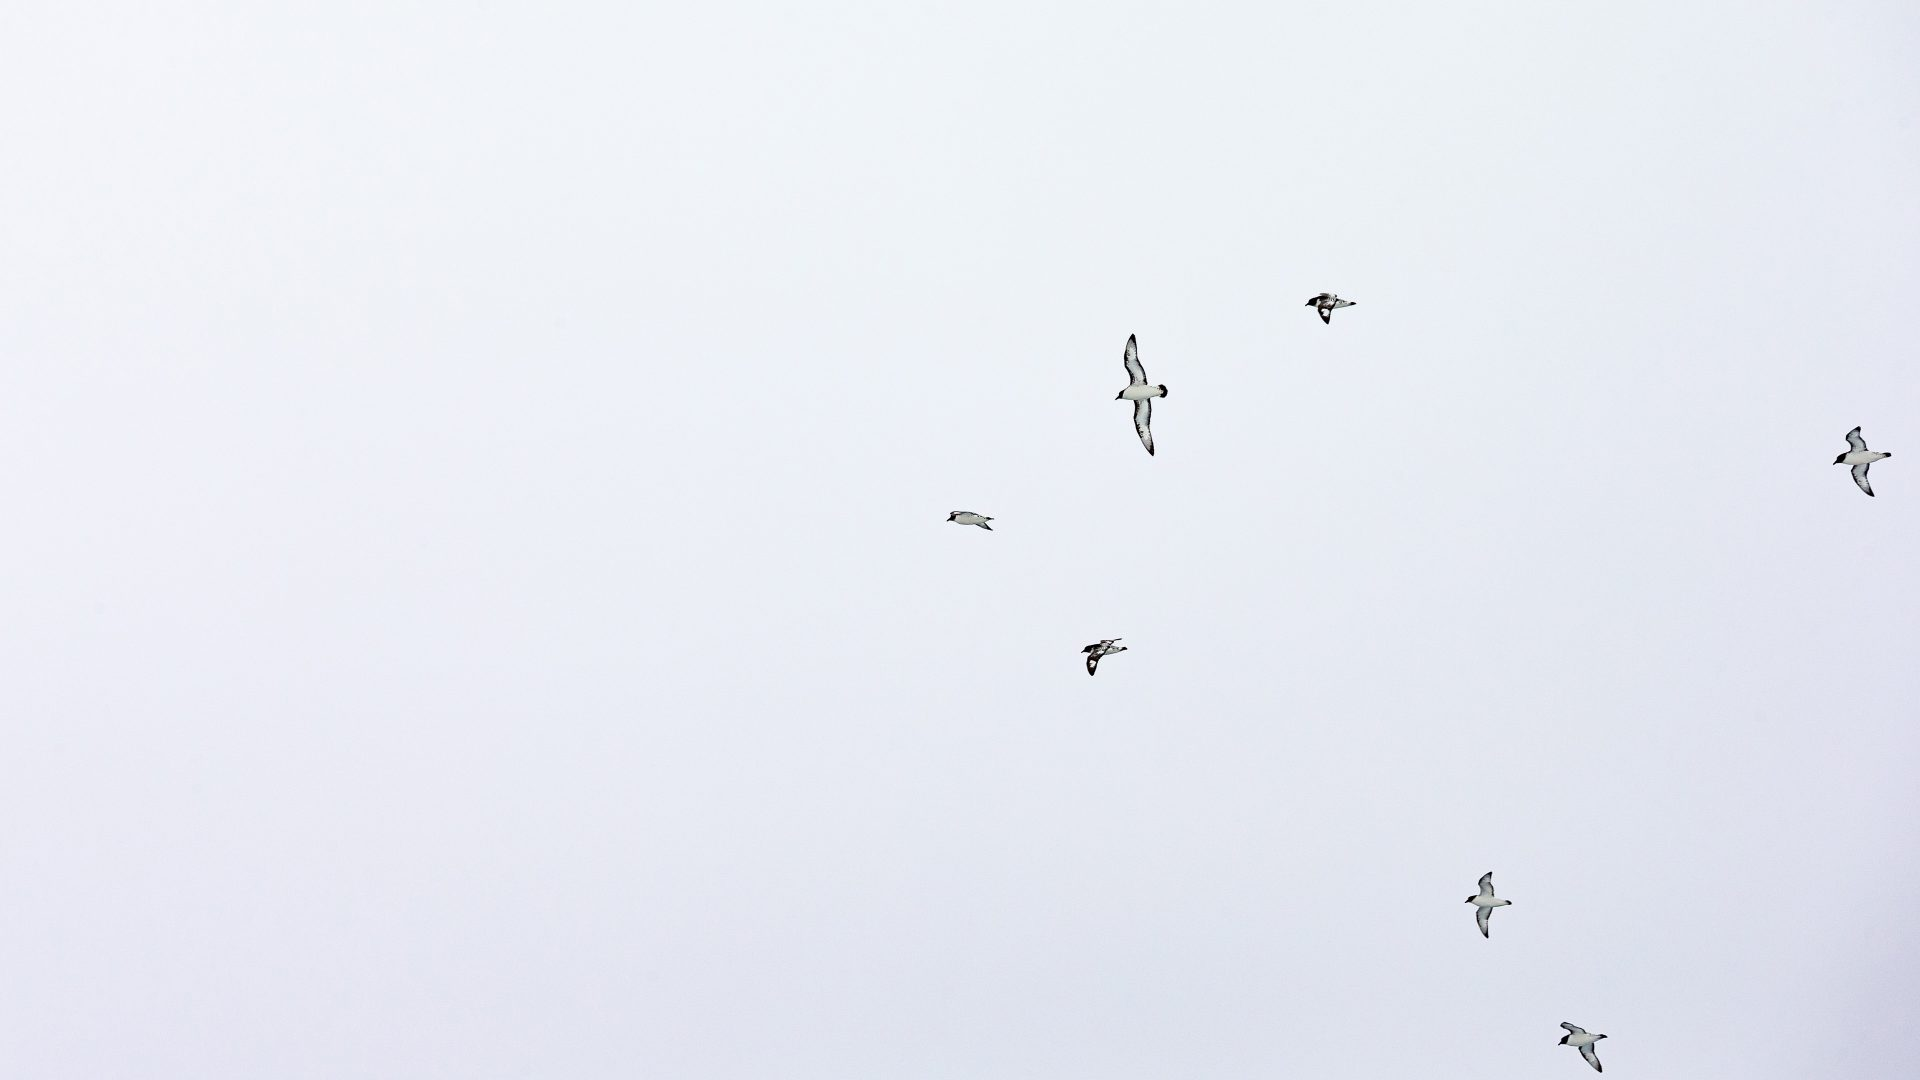 Birds fly against a cloudy sky in Antarctica.